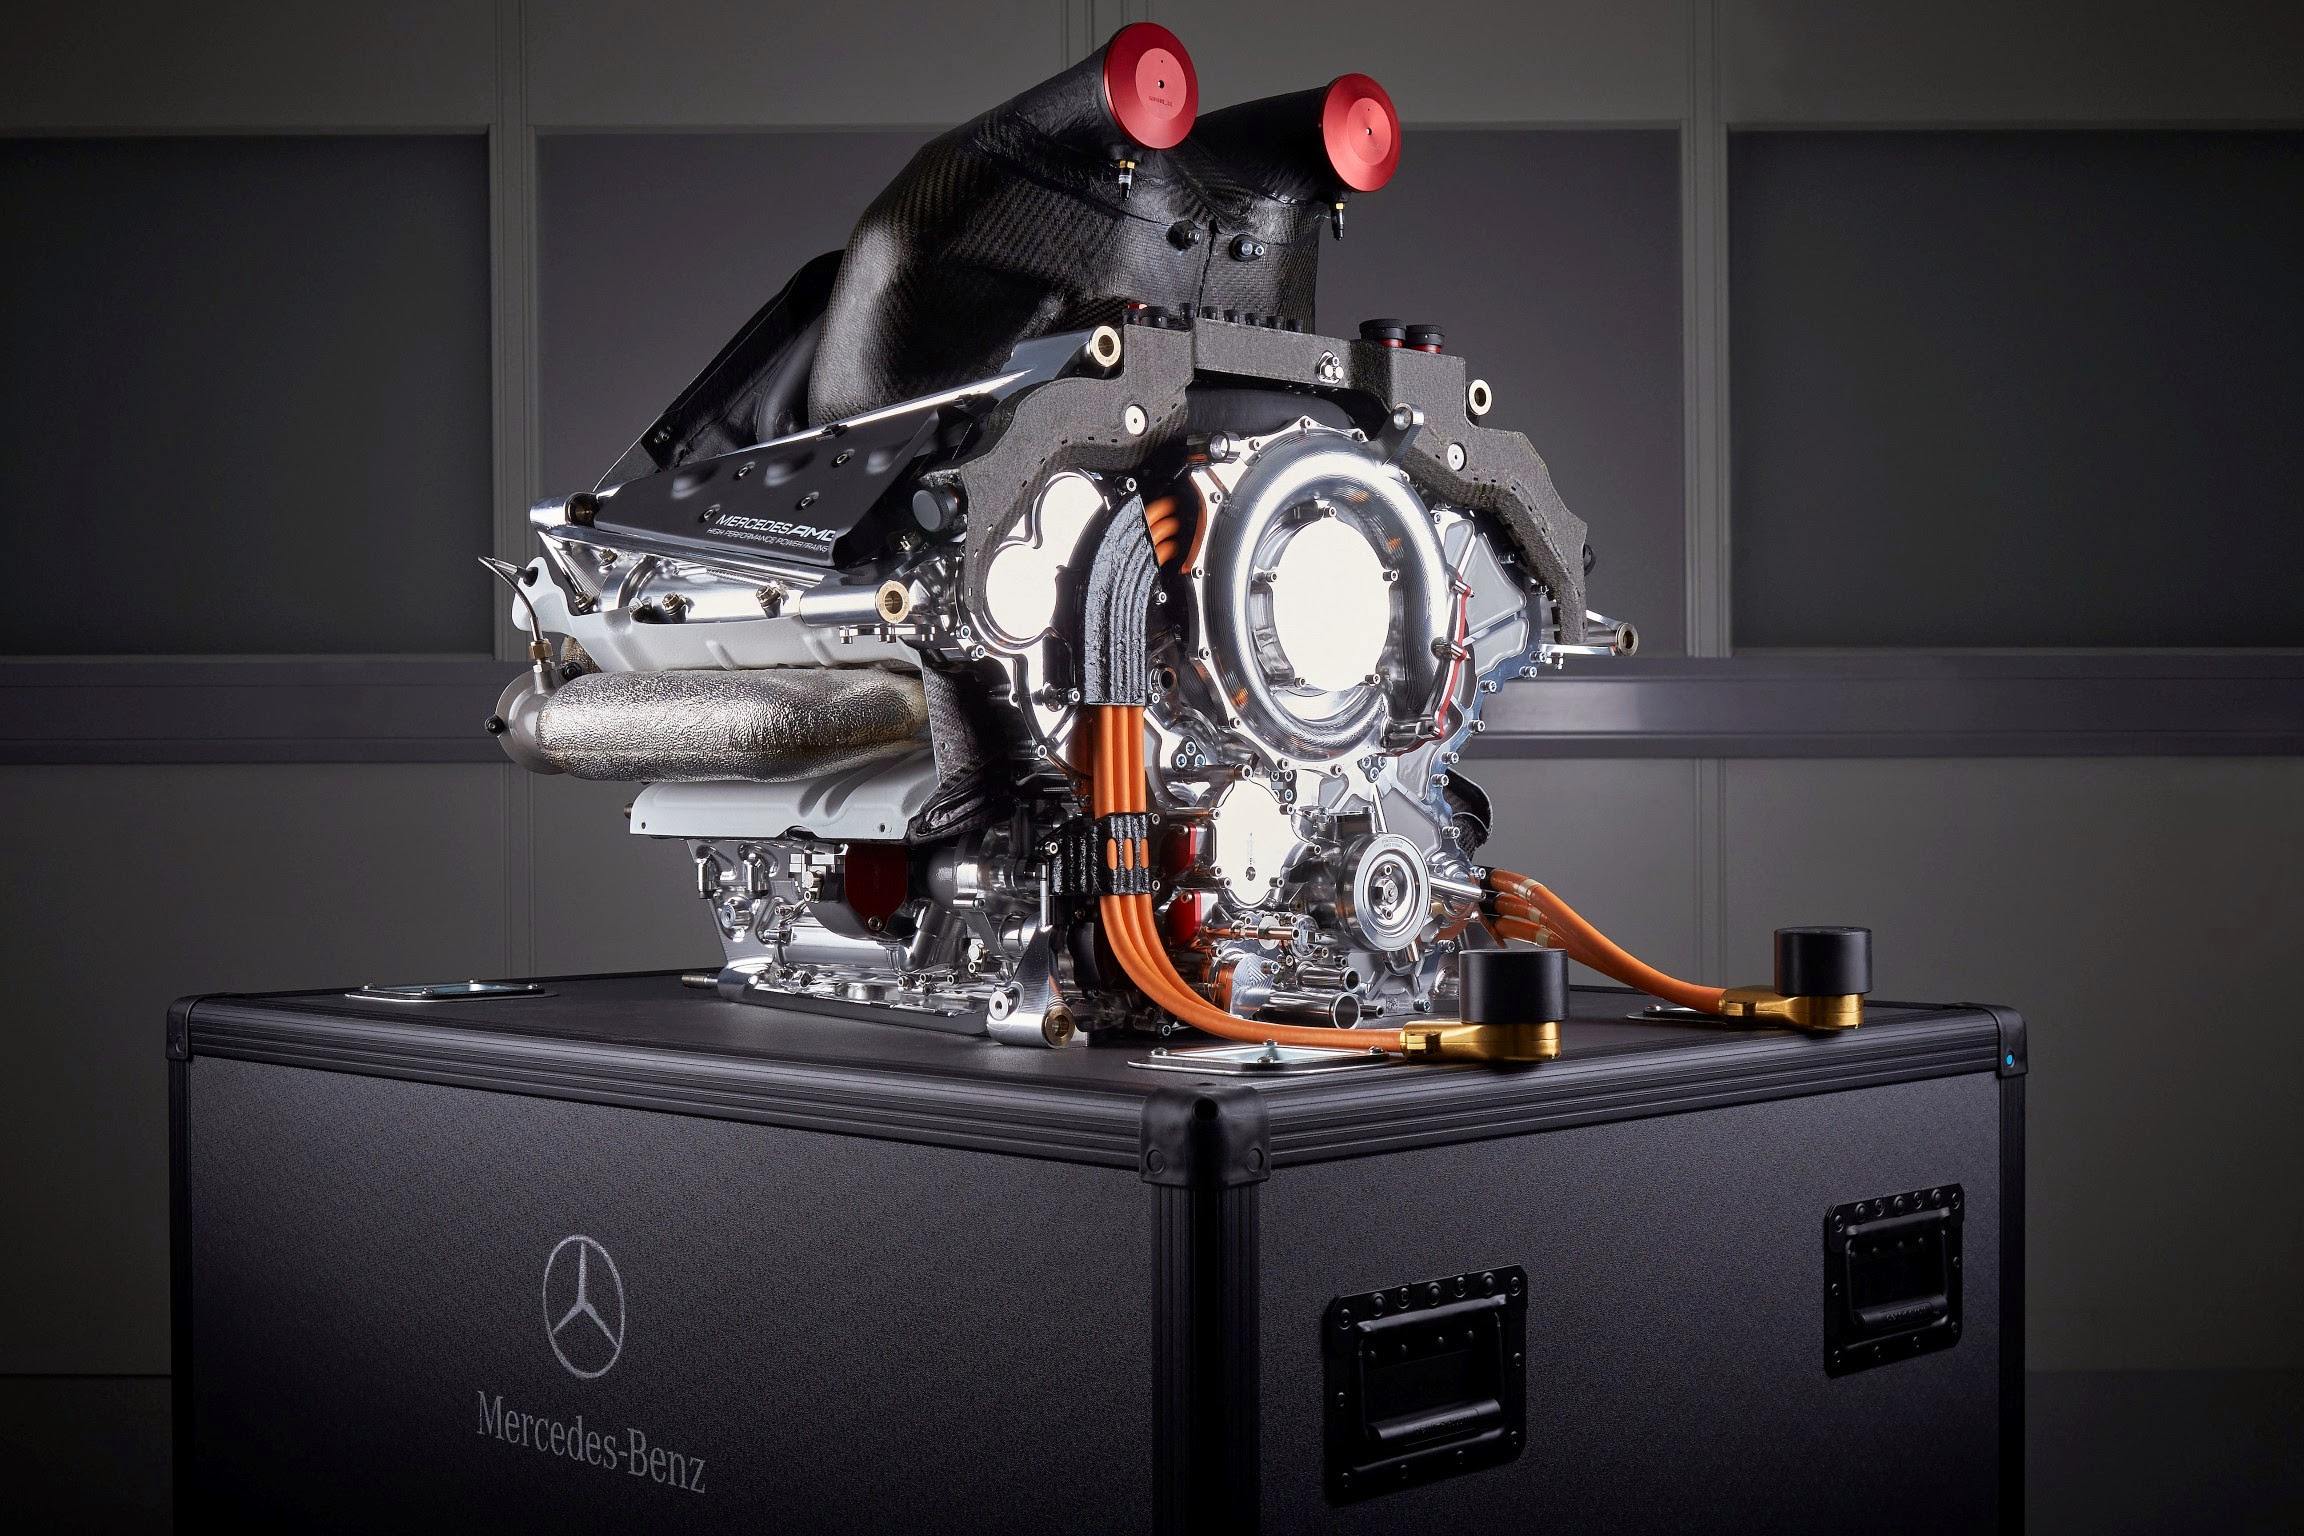 Mercedes F1 W06 is Bringing Its Enhanced Engine to Canada